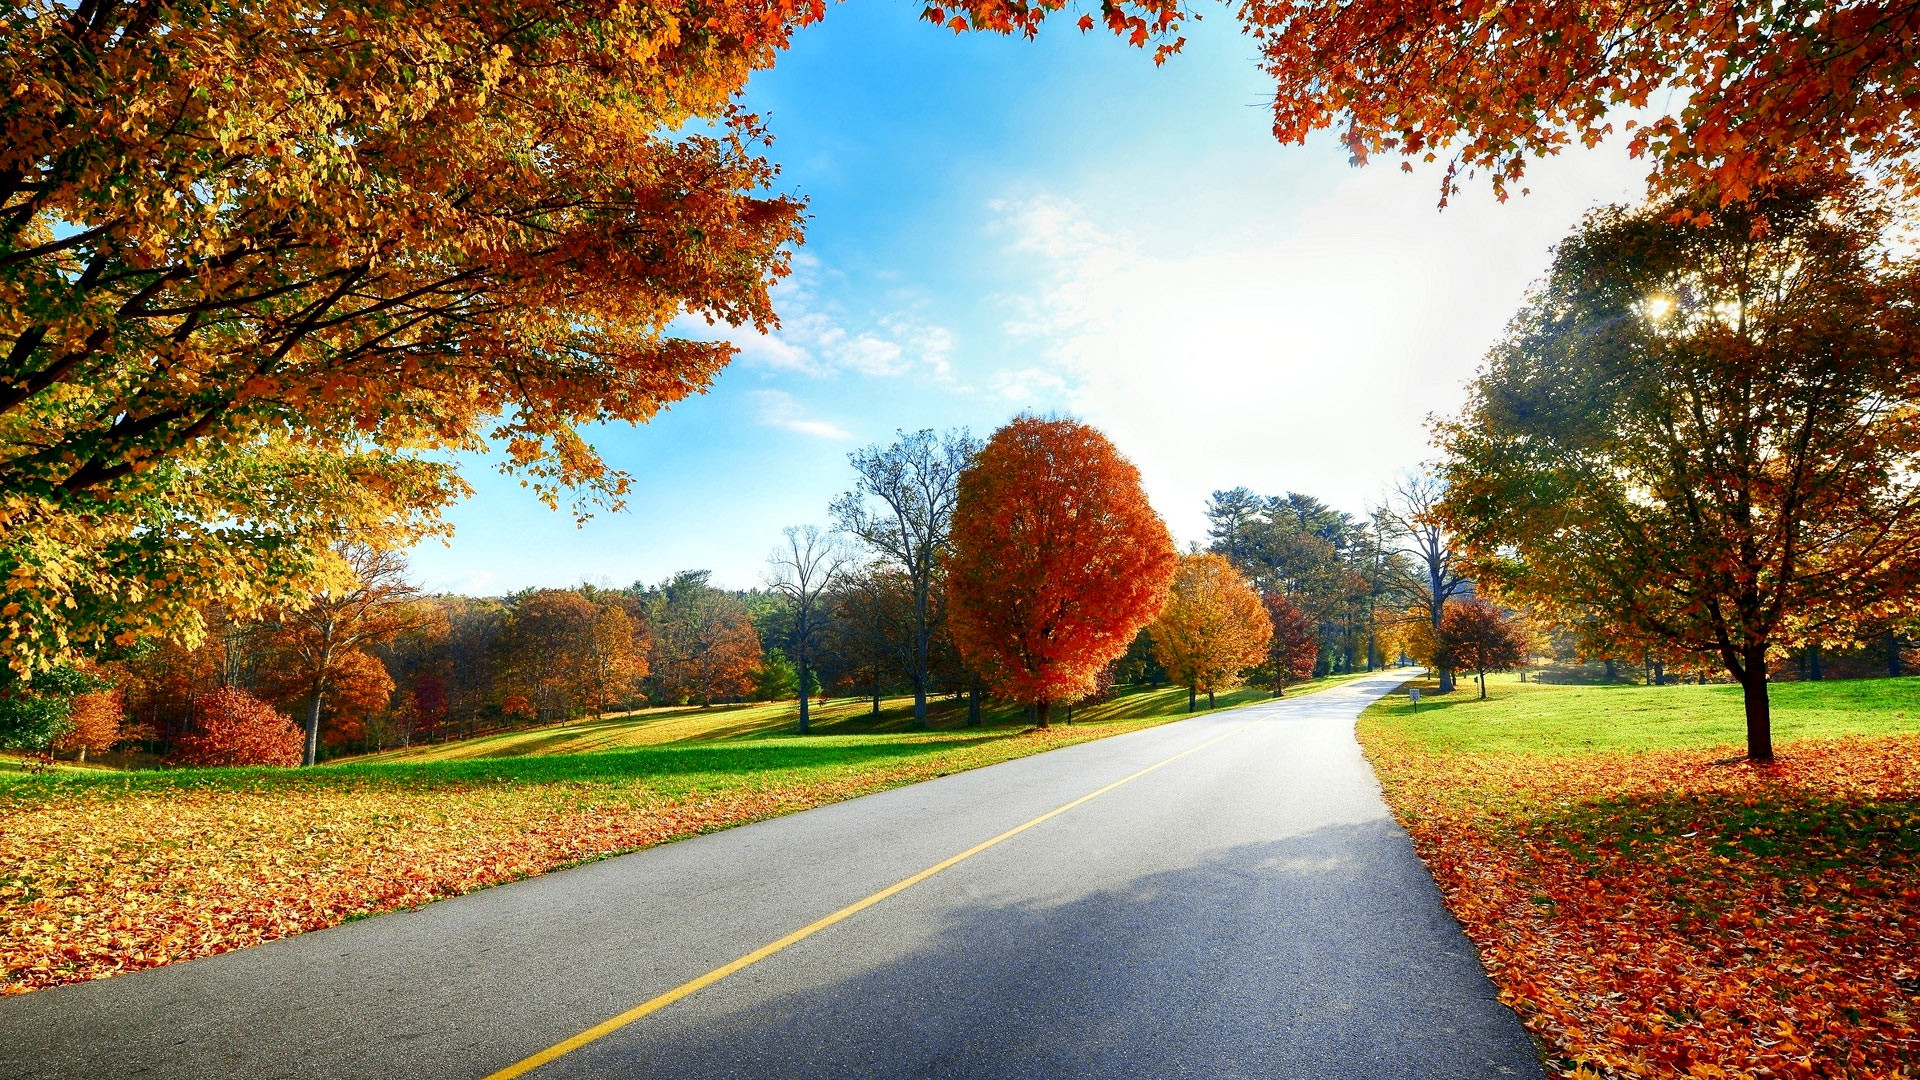 1920x1080 Beautiful autumn road scenery wallpapers – Free full hd wallpapers .